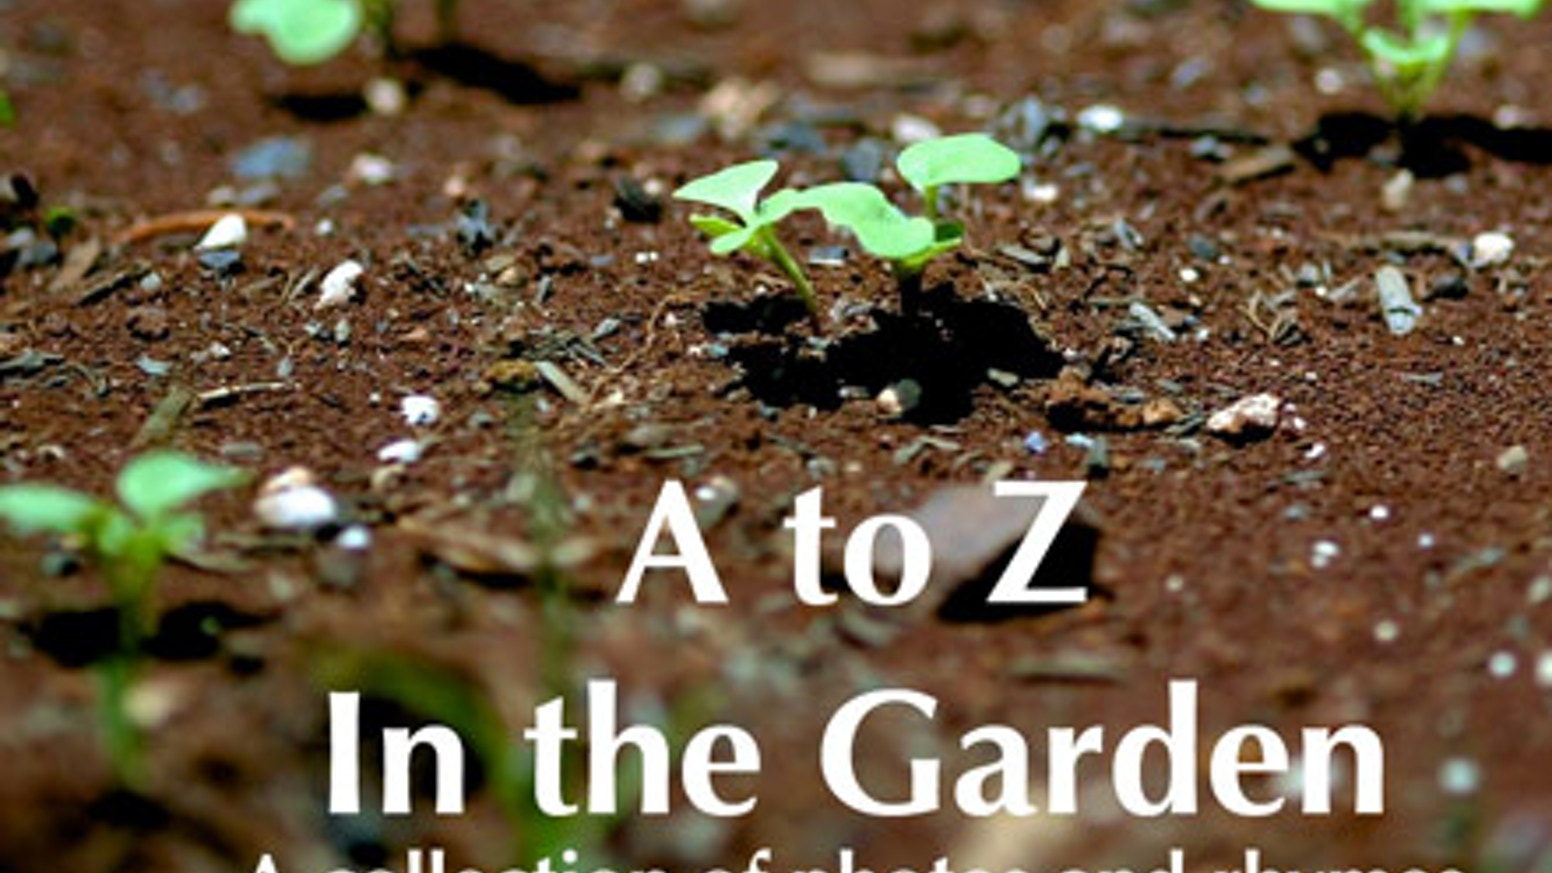 A to Z In the Garden ~ A collection of photos and rhymes by Micah ...